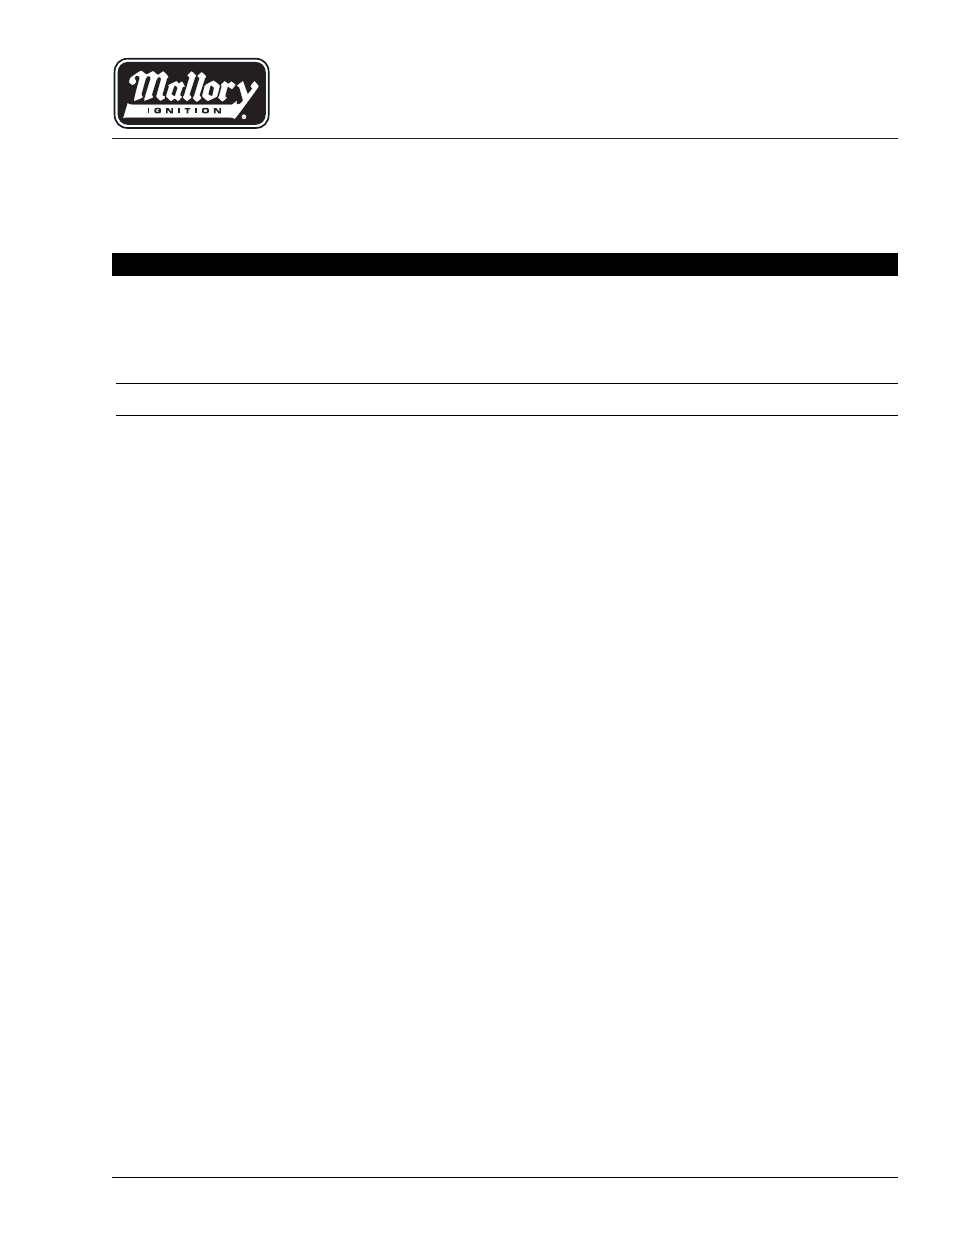 mallory ignition mallory unilite distributor page1 mallory ignition mallory unilite distributor user manual 13 mallory ignition wiring diagram at couponss.co